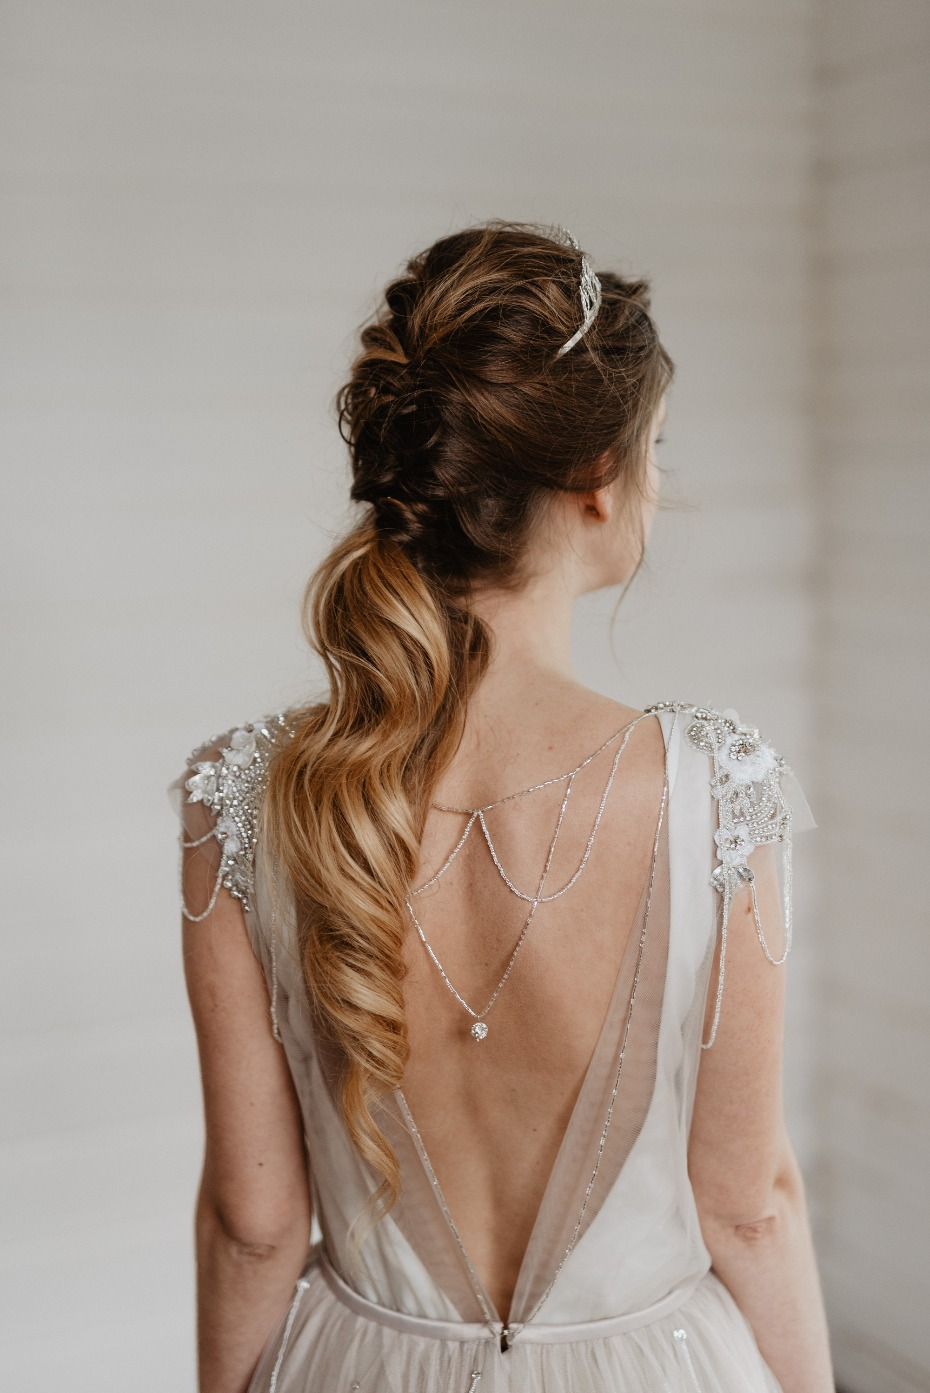 Wedding hair #goals and dress detail